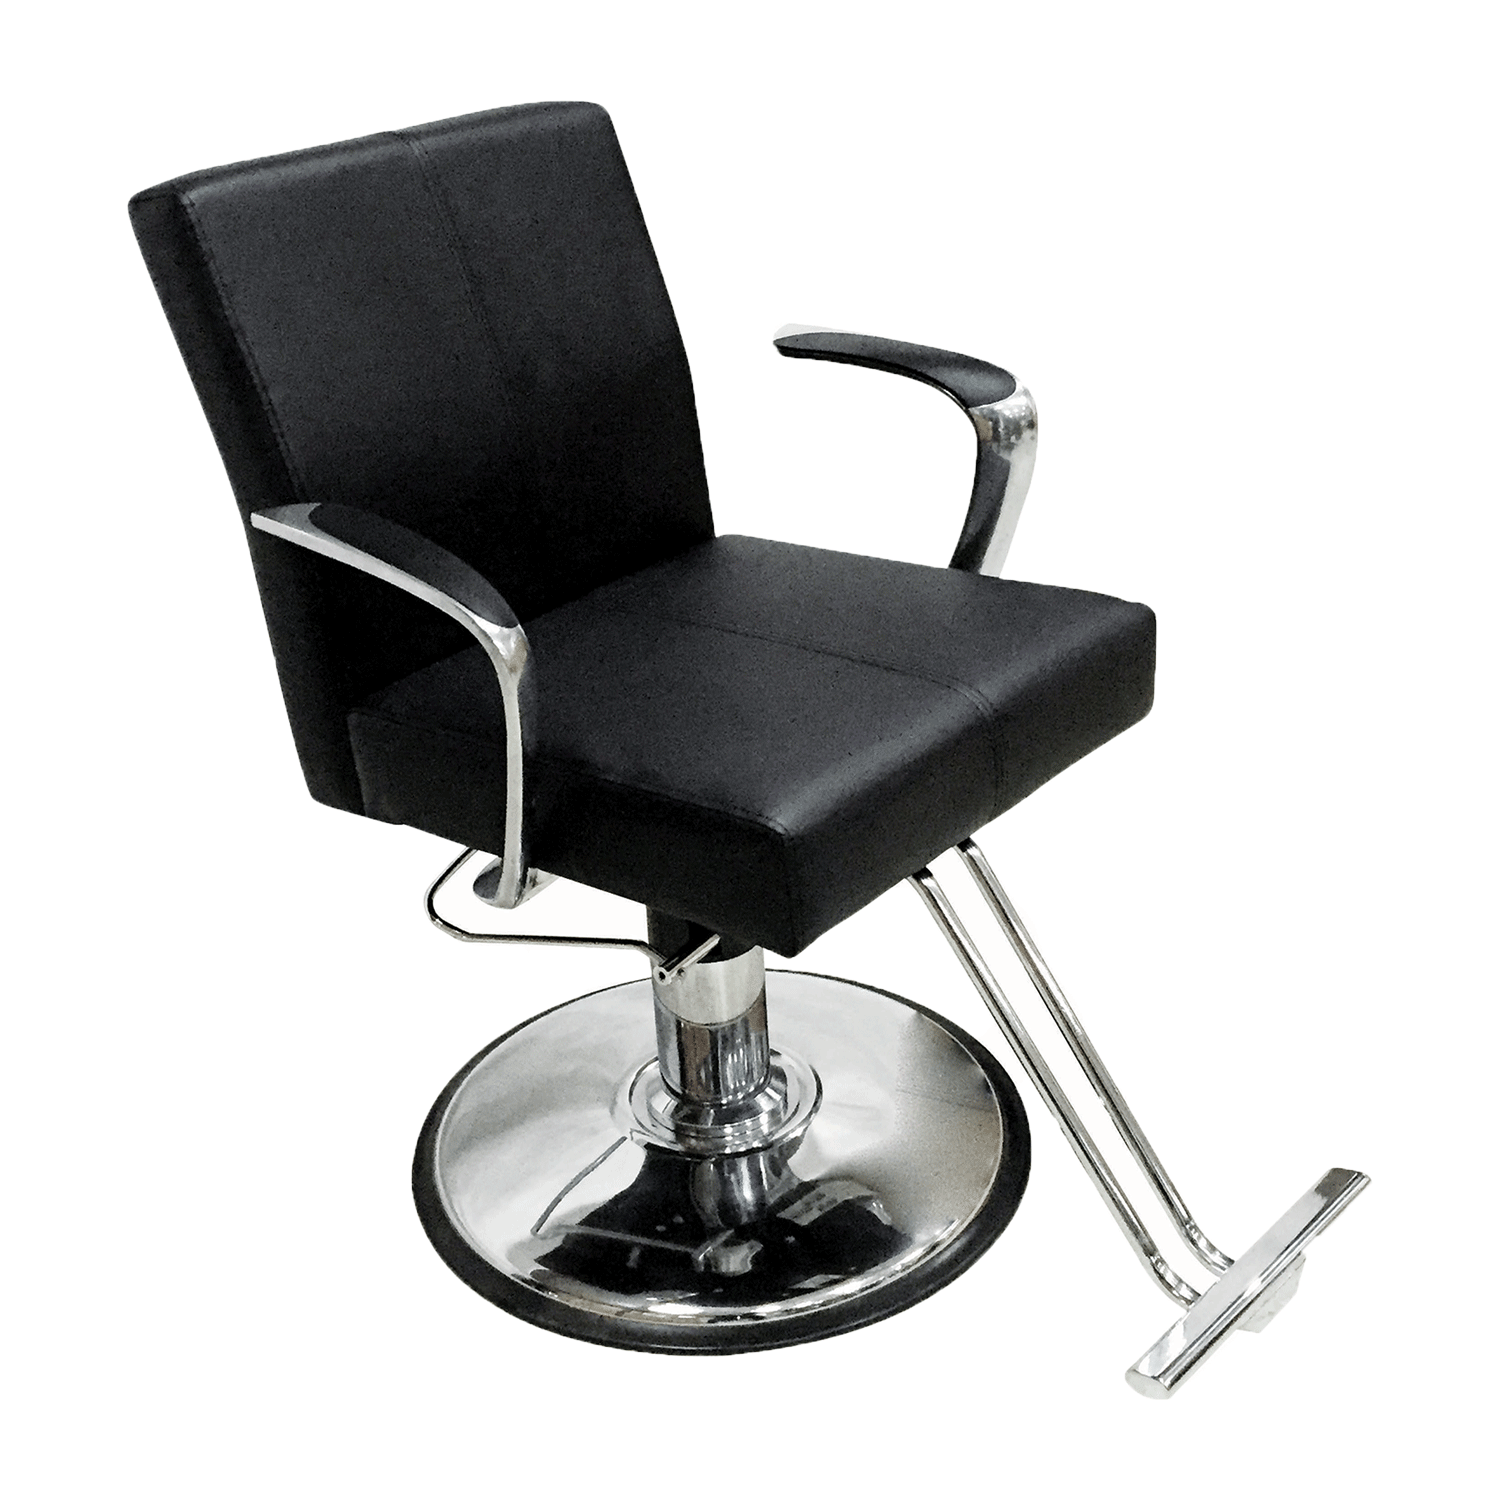 stylist chair for sale covers at home salon chairs dryer stools sally beauty melborne styling